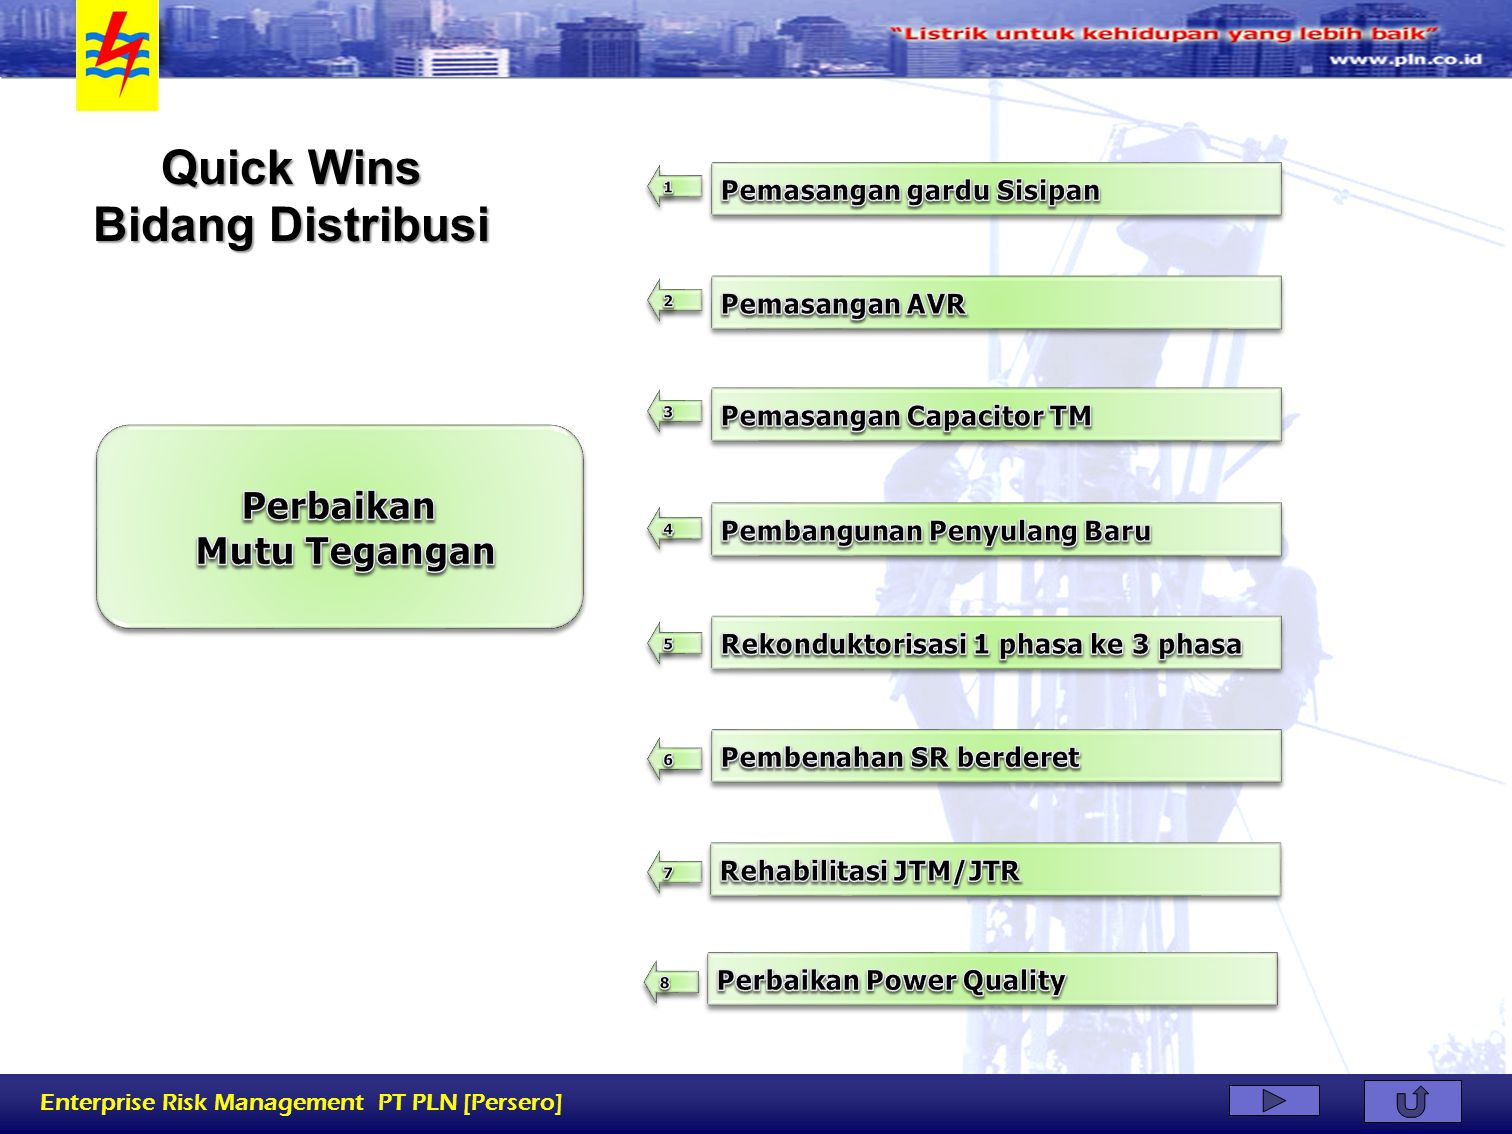 Quick Wins Bidang Distribusi